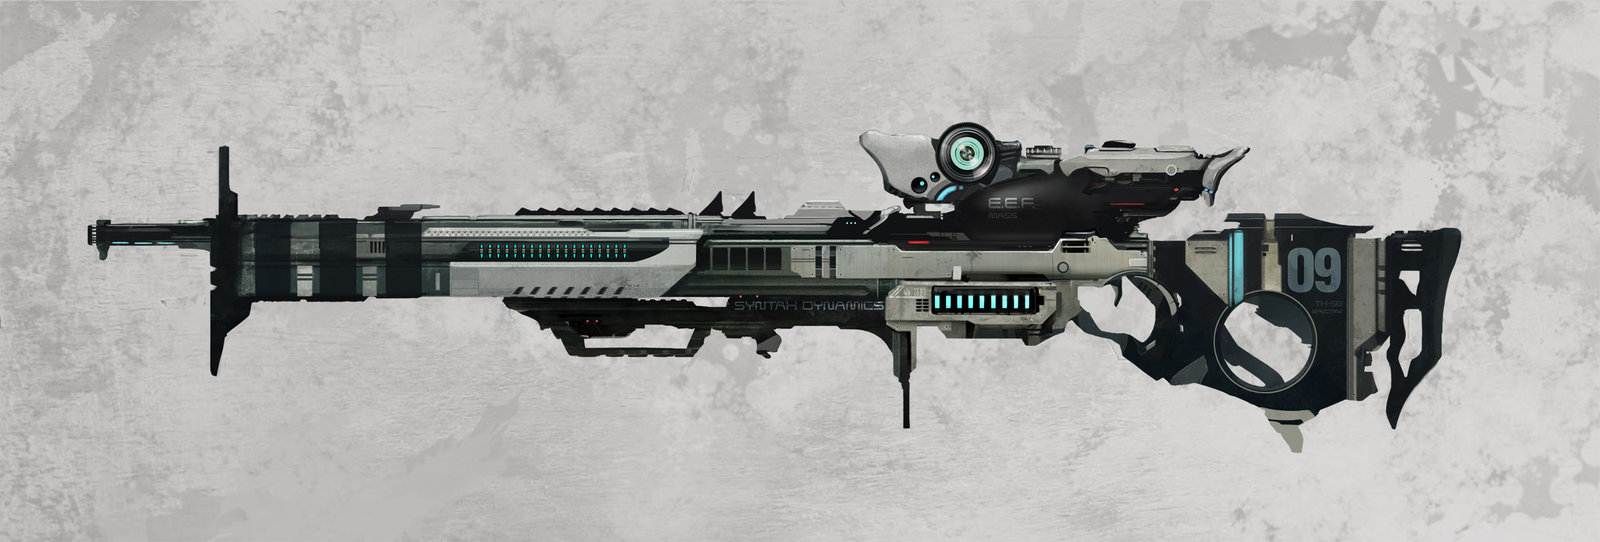 Drawn snipers space 50 on DeviantArt Rifle by